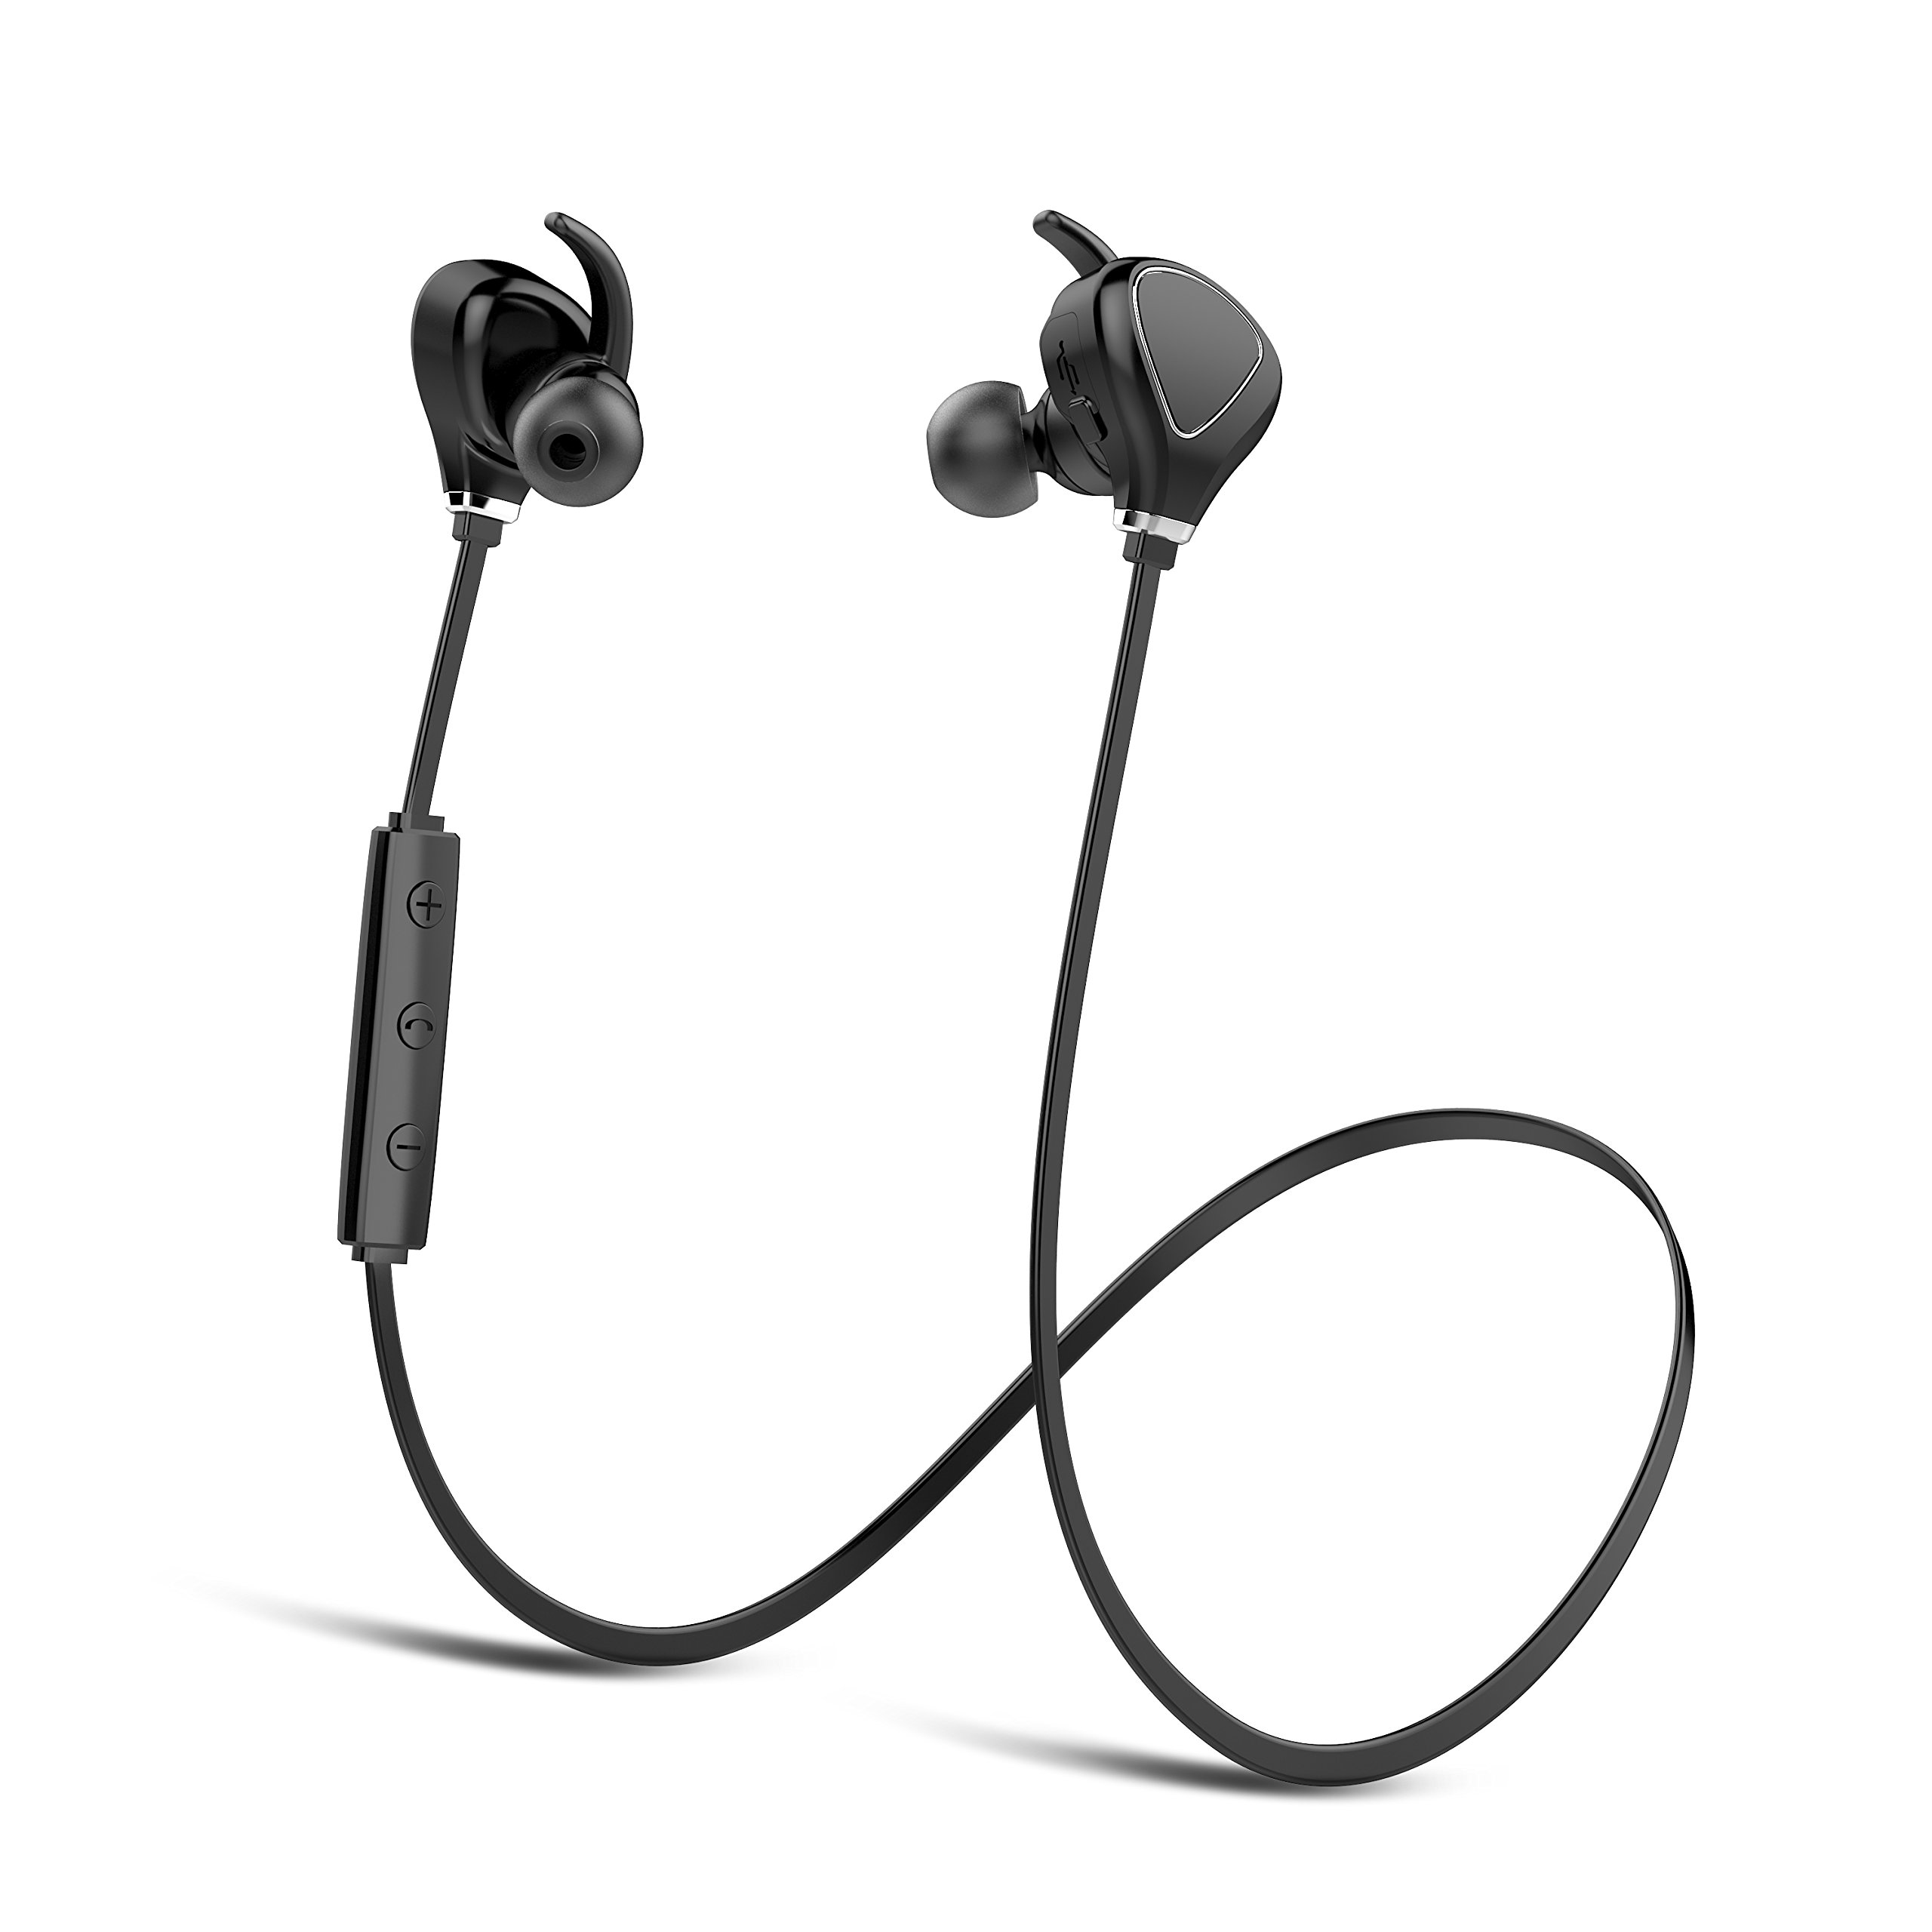 YUWISS Wireless Headphones Bluetooth Running Headphones Workout Headphones Cordless in Ear Earbuds with Mic Stereo Sweatproof Sport Earphones for Running Gym 8 Hours Battery Life (Black)